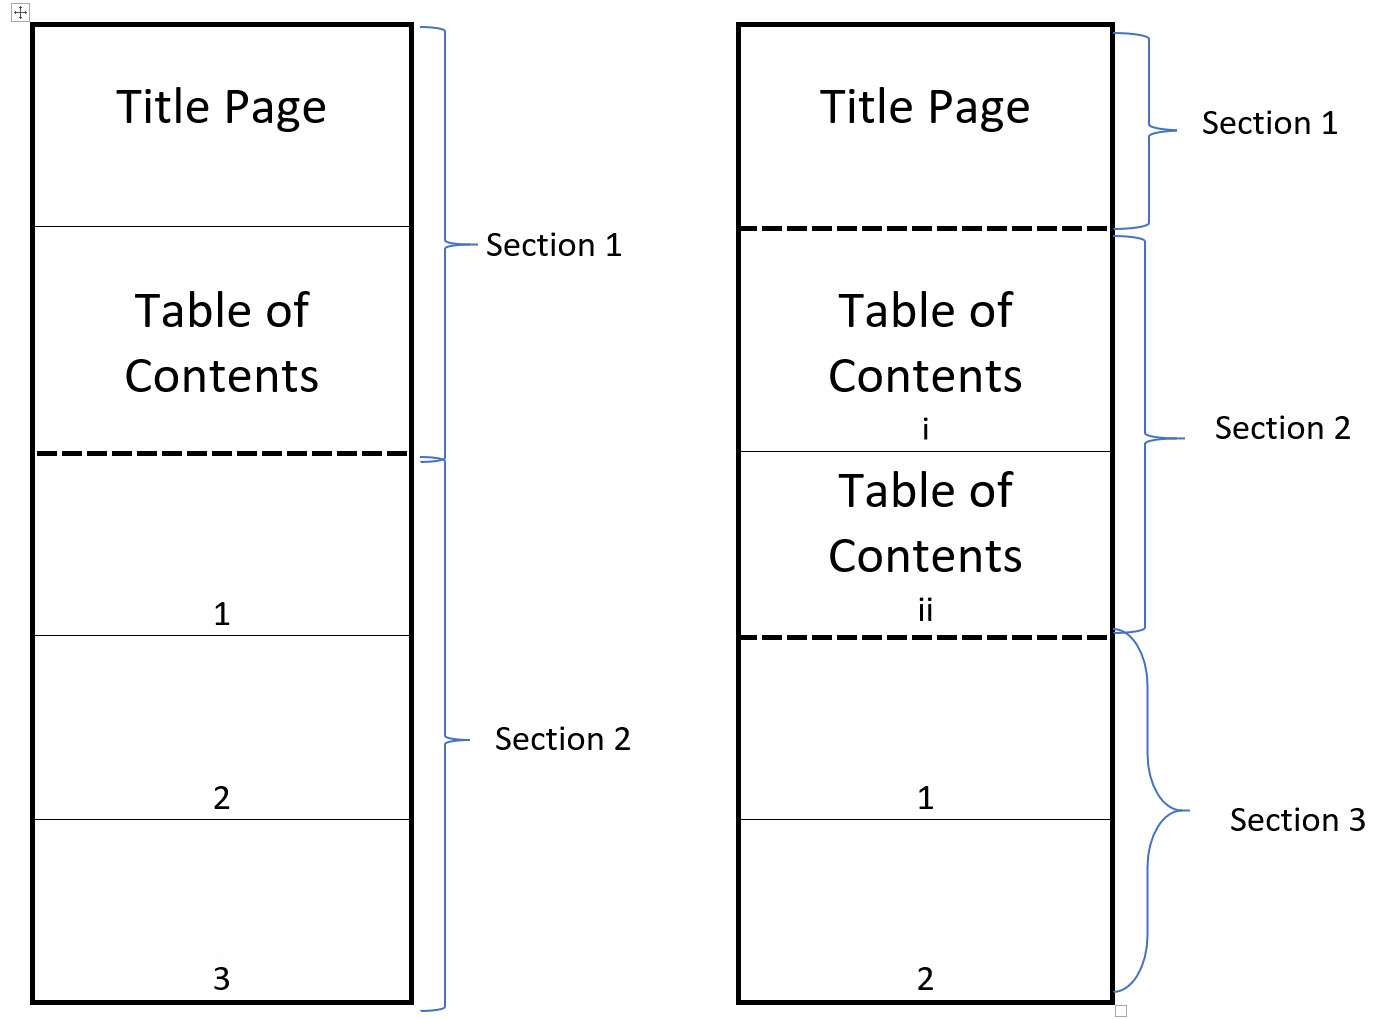 Dividing a page into sections to show how page number formats can be different in different sections